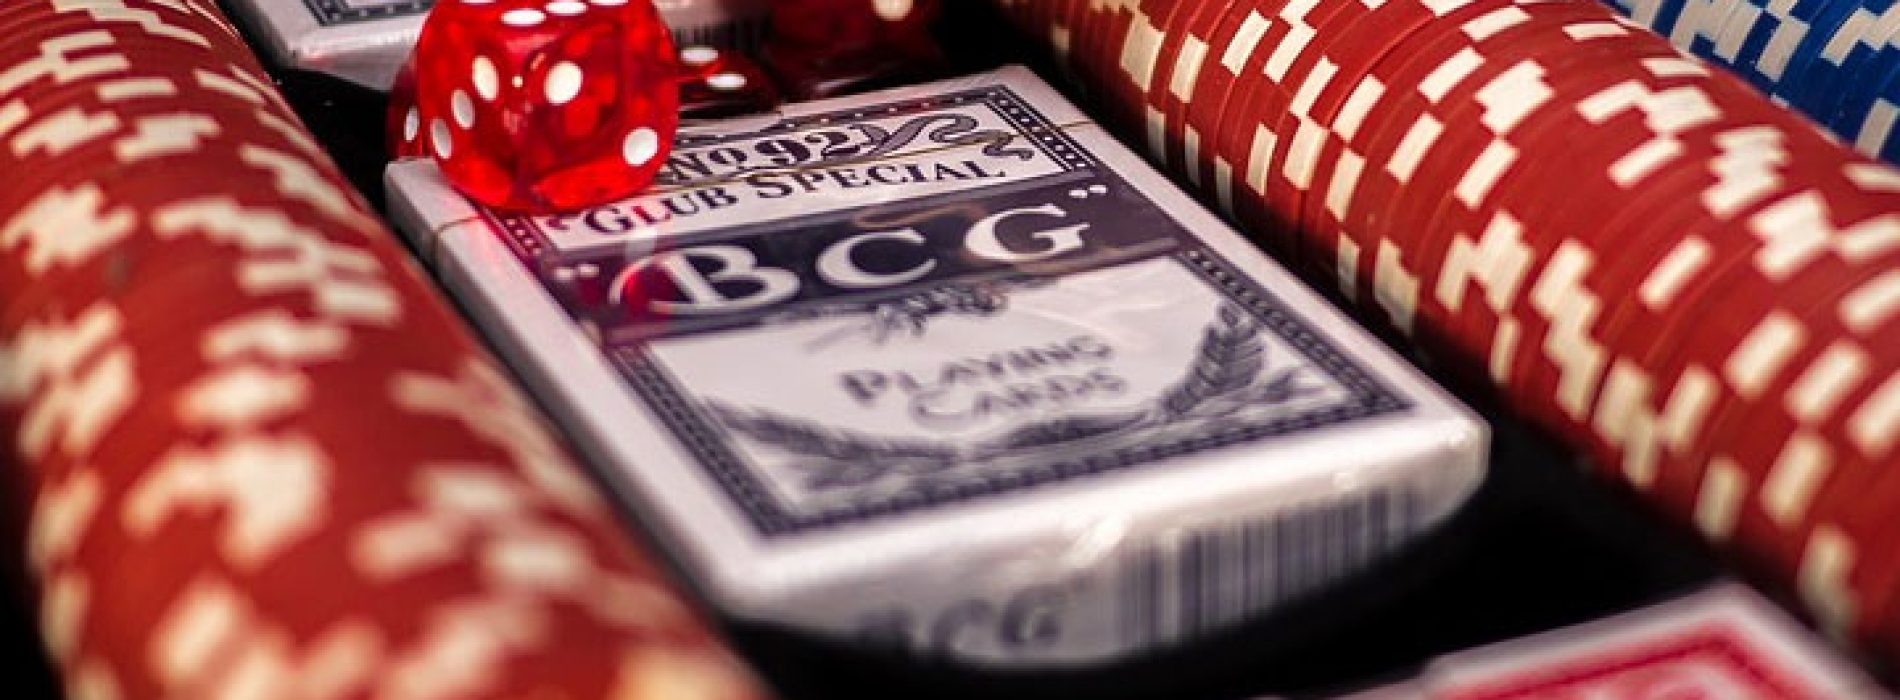 Gambling industry: to create a big bang in the future?